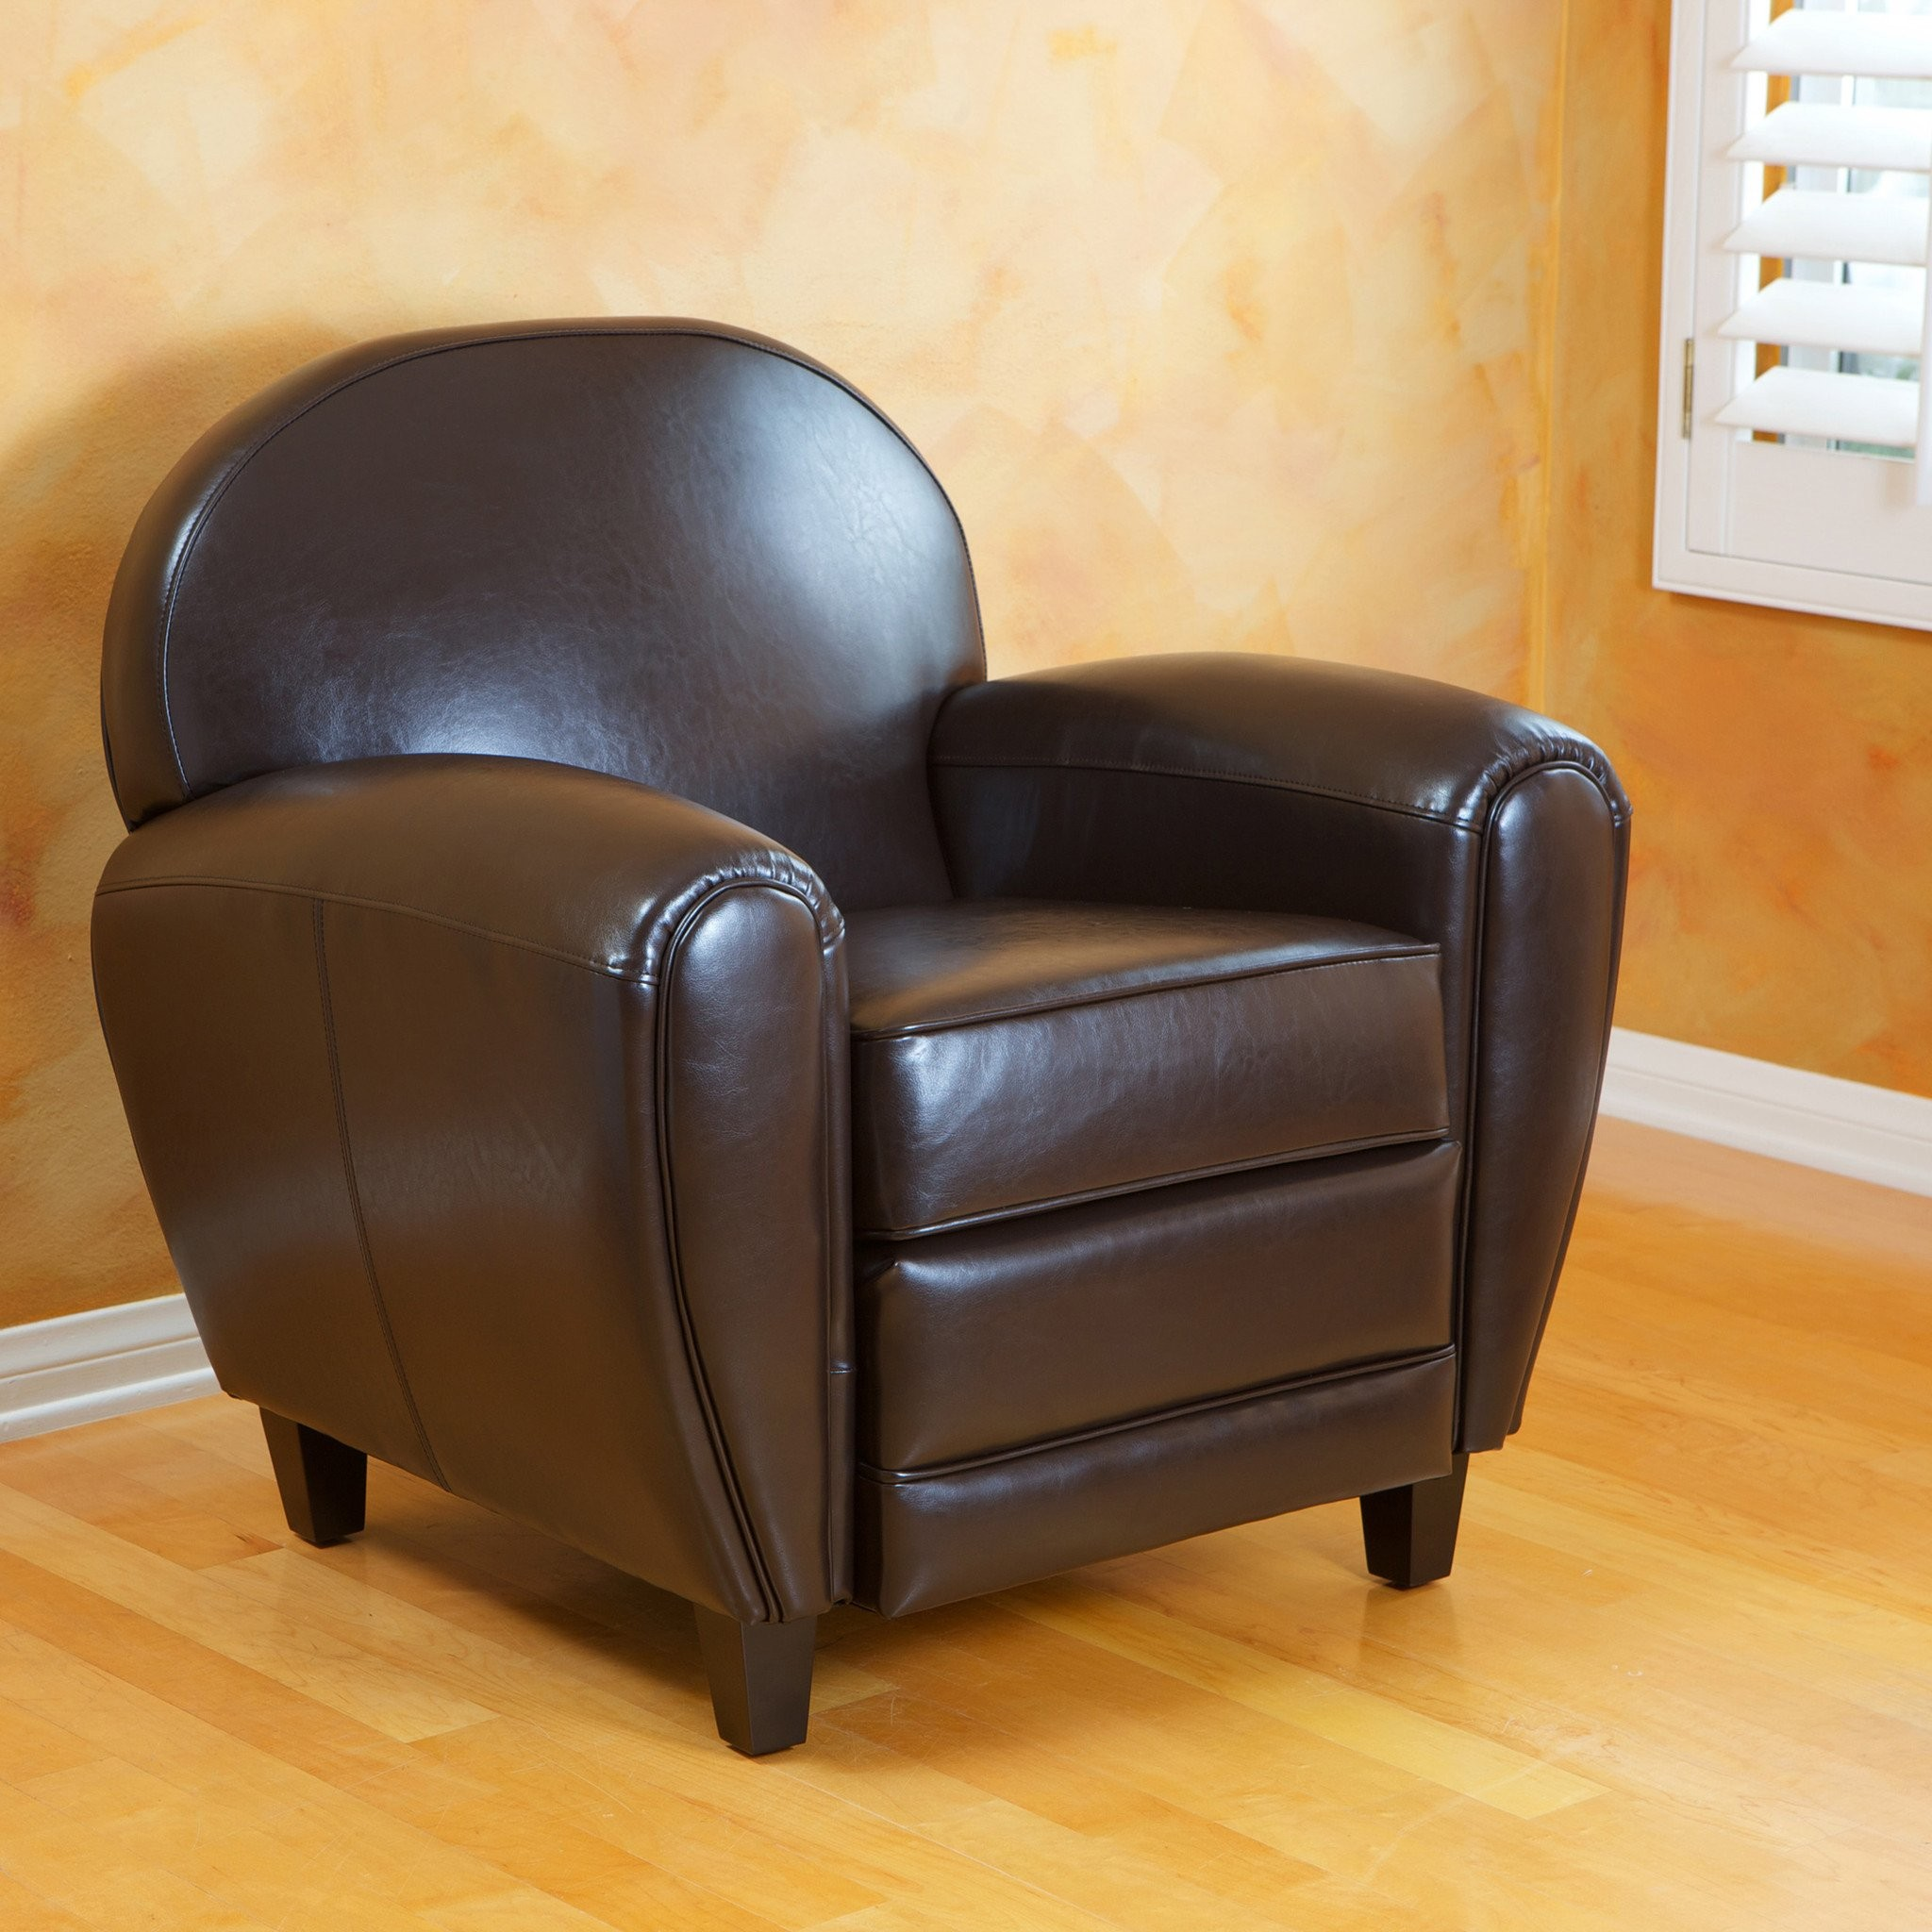 Bower Brown Leather Club Chair